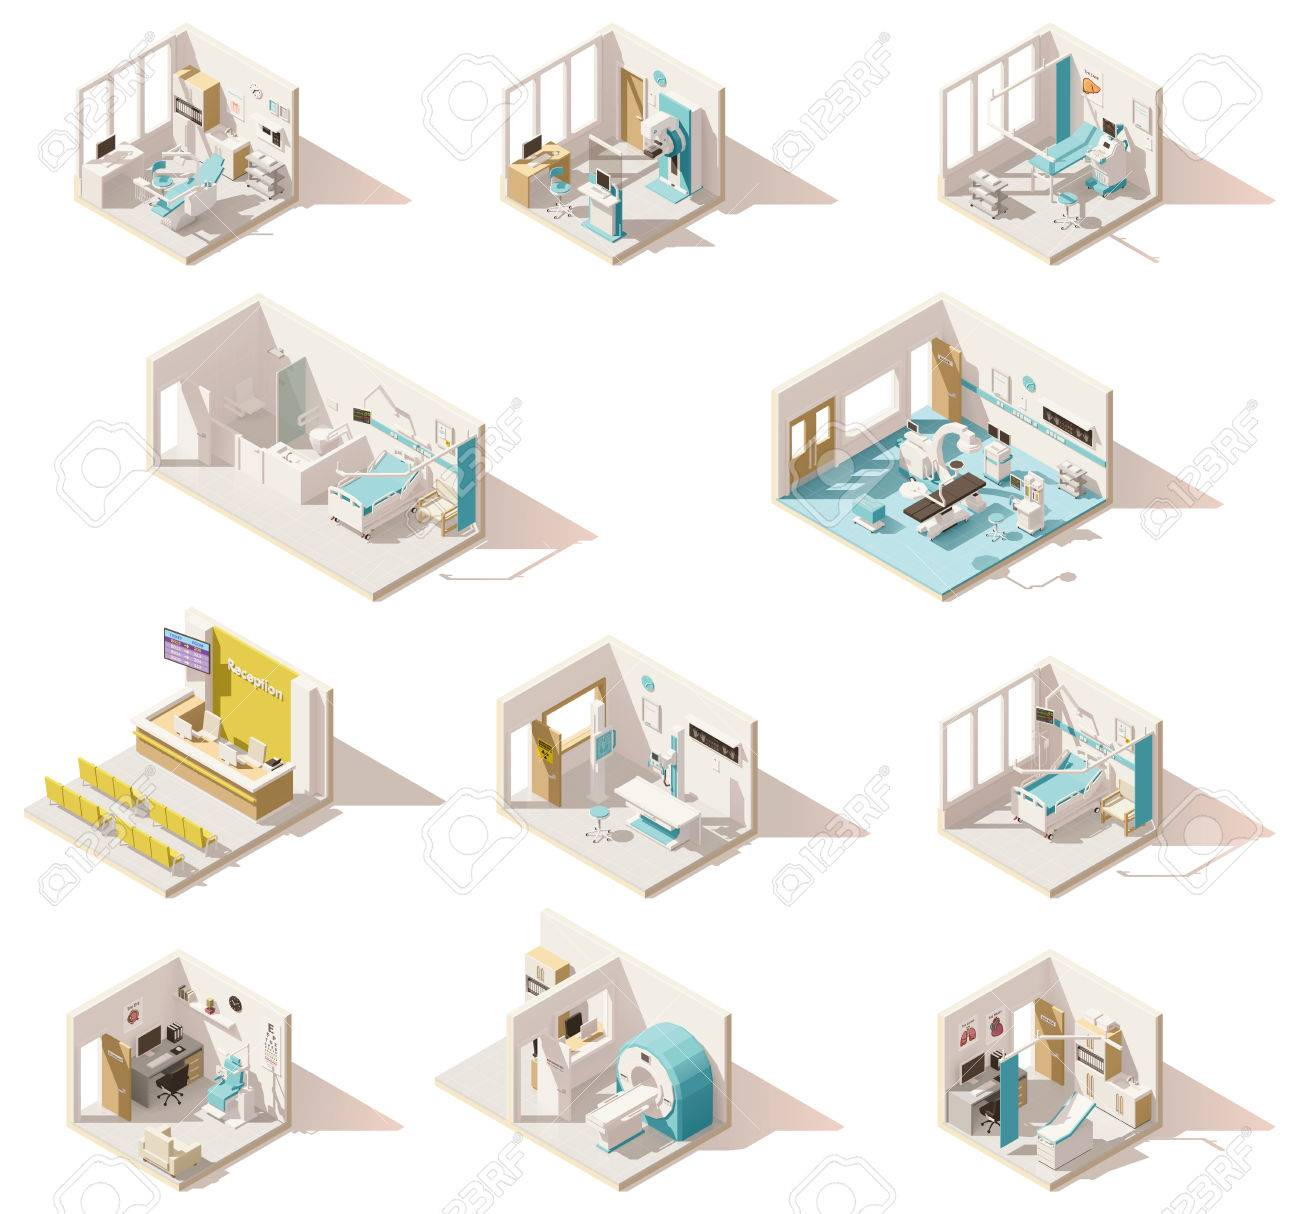 Vector isometric low poly hospital rooms - 74799400